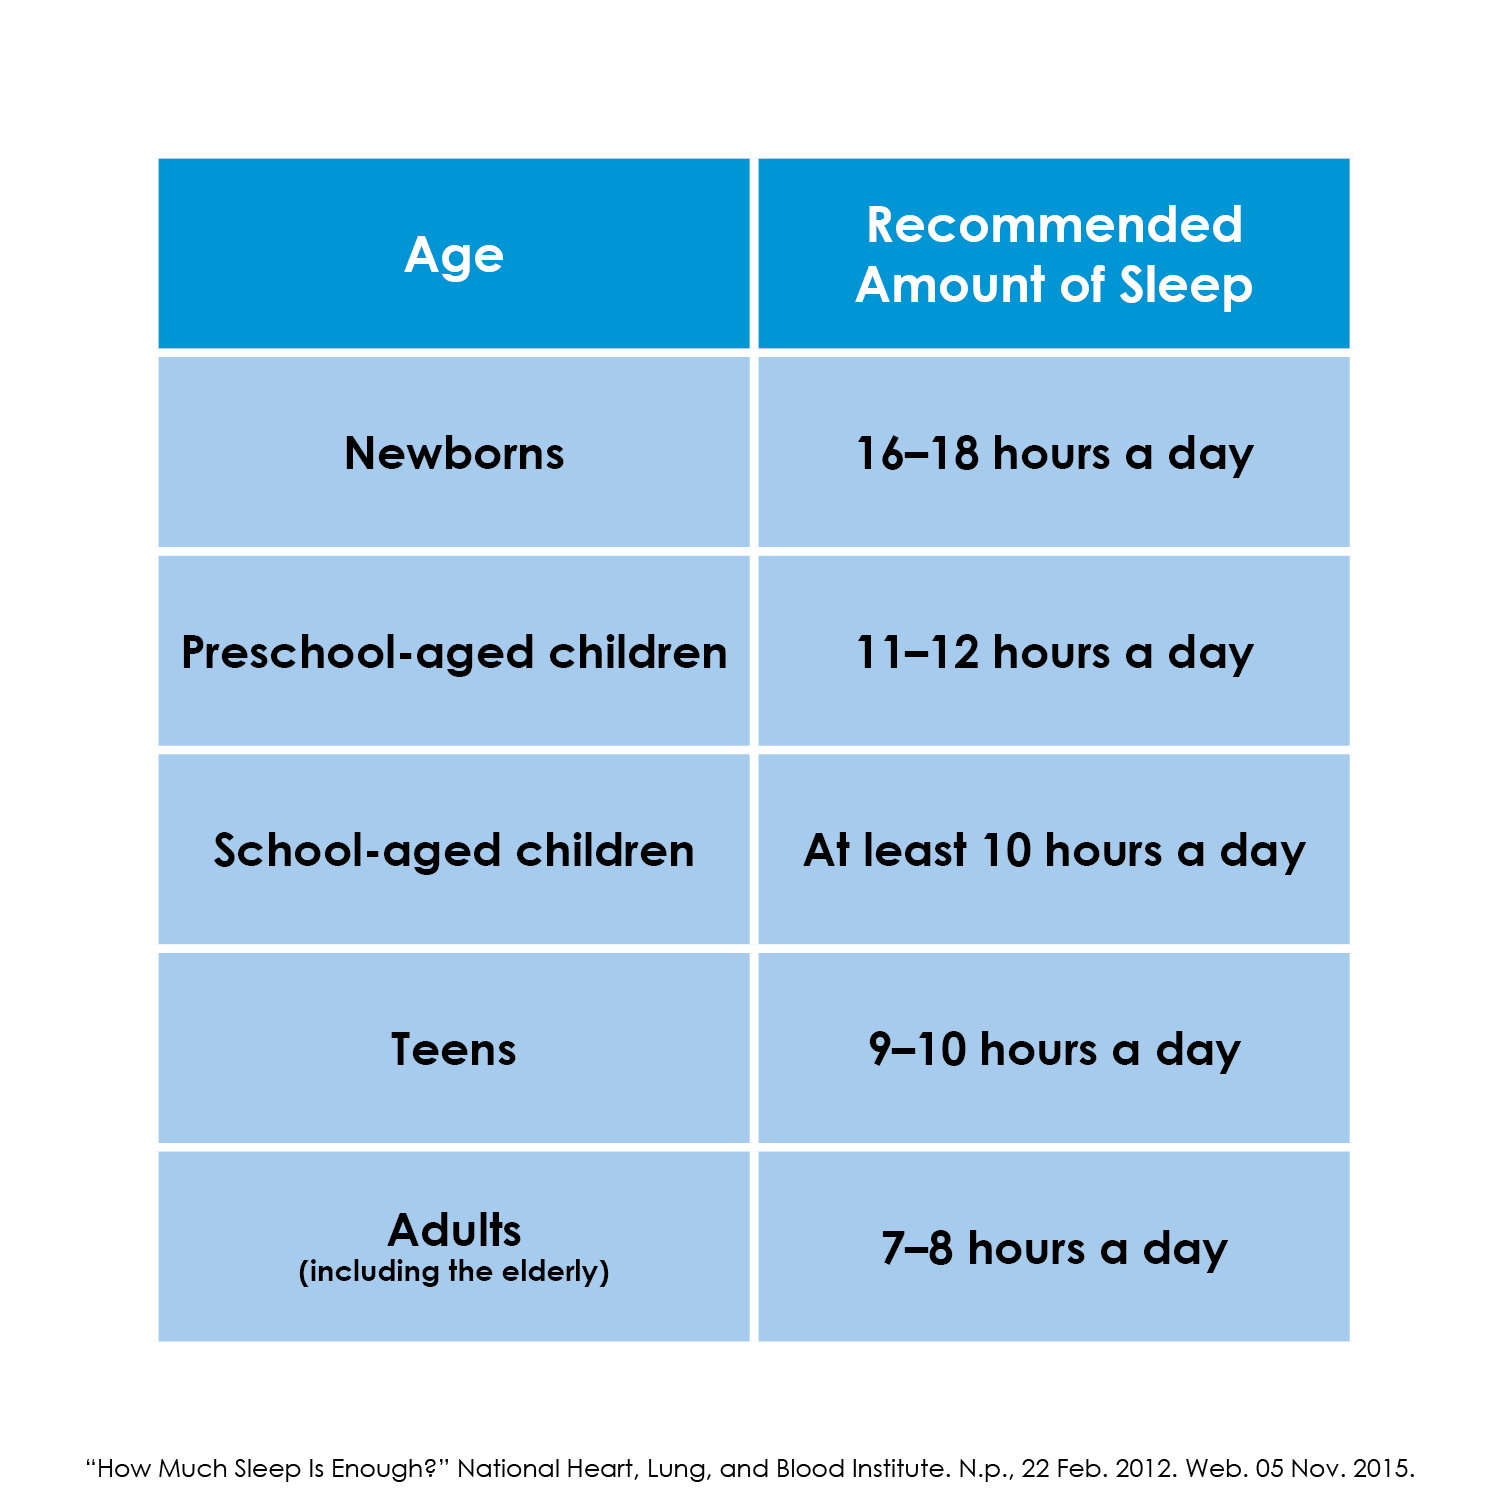 Sleep Recommendations from the National Heart, Lung and Blood Institute